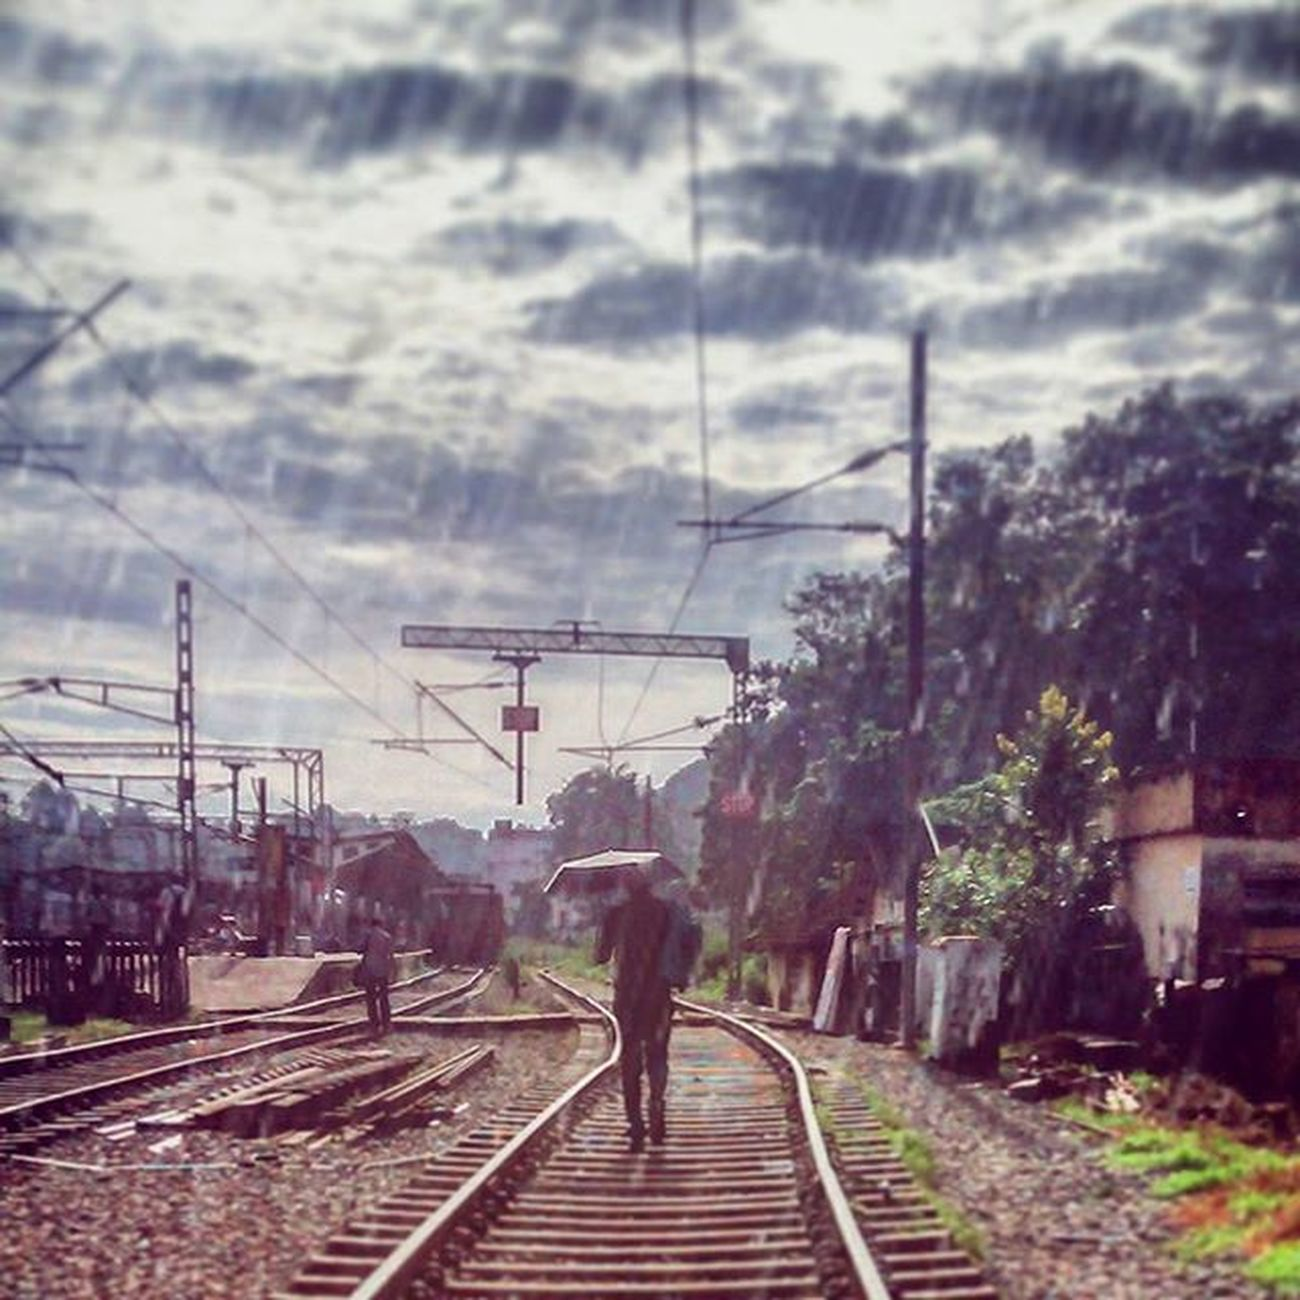 Walking Hazards™ 🙅👷👮👽👣 Travel Travelogue Manontrack Spotclick Tiltnshift Kottayam Offtokochin Morning Rain Love Strangeronframe Insta Instamood Instalike Instadaily F2f L4l Followforfollow Follow Followmefollowyou Peace